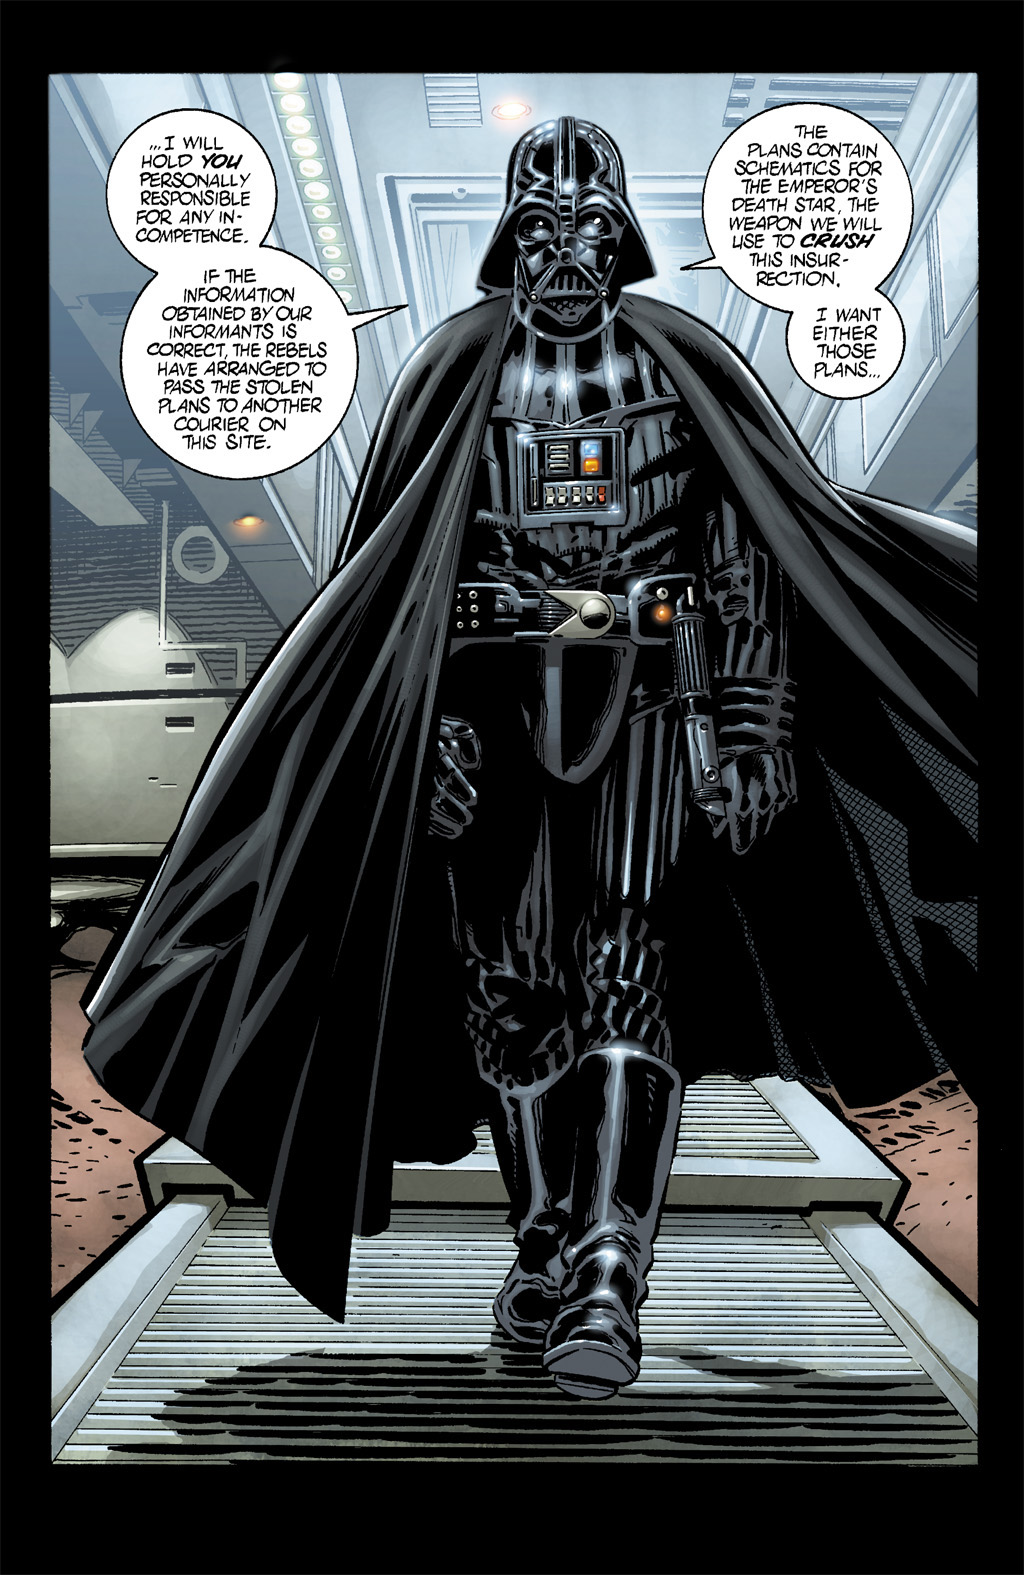 Darth Vader (RotJ) and Luke Skywalker (RotJ) vs B-Team - Page 6 RCO008_1469391407